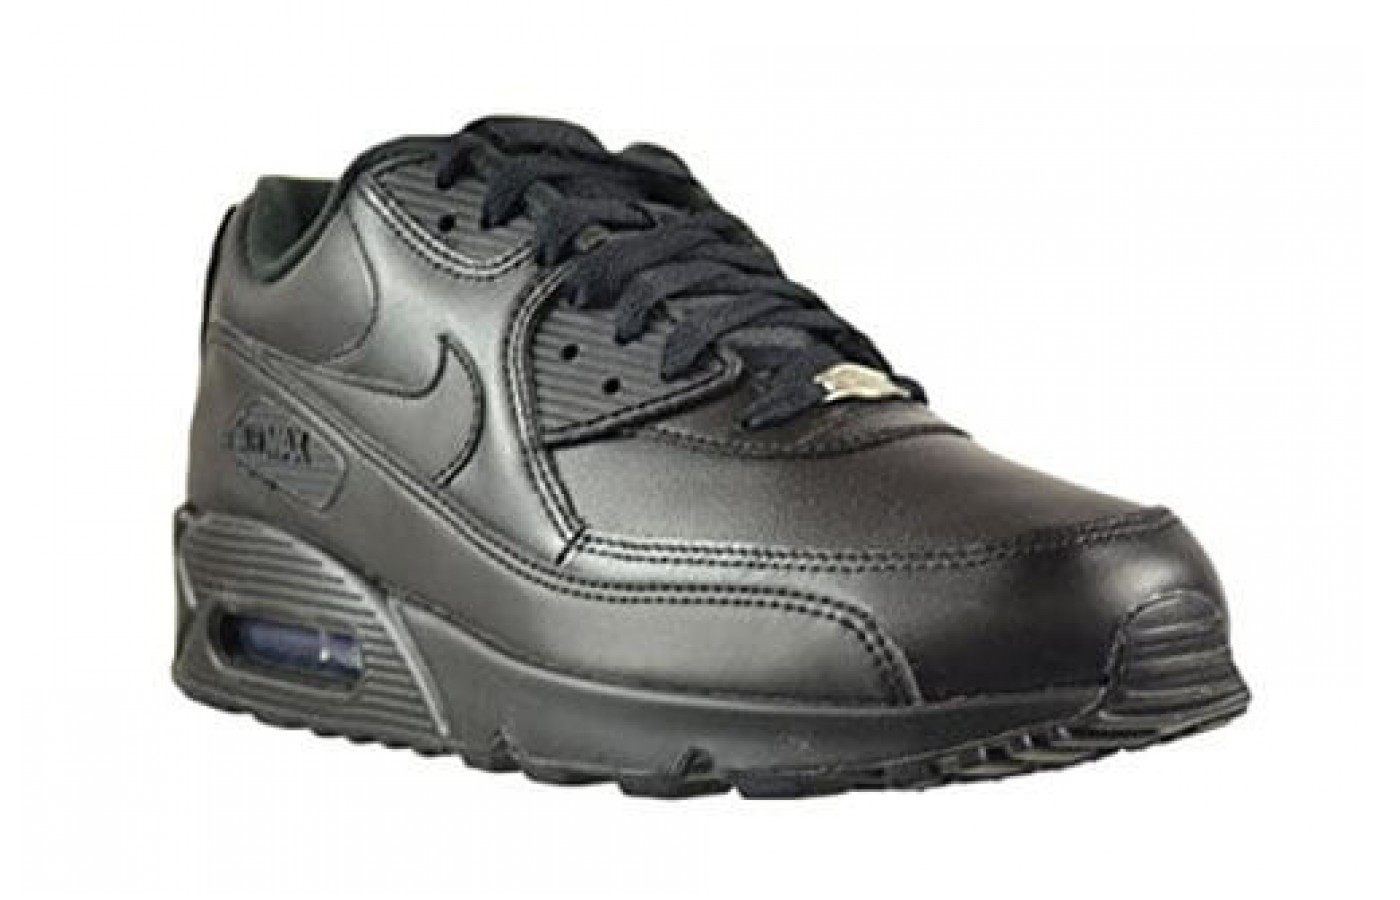 This shoe is great for logging miles or as a fashionable accessory for a night out.